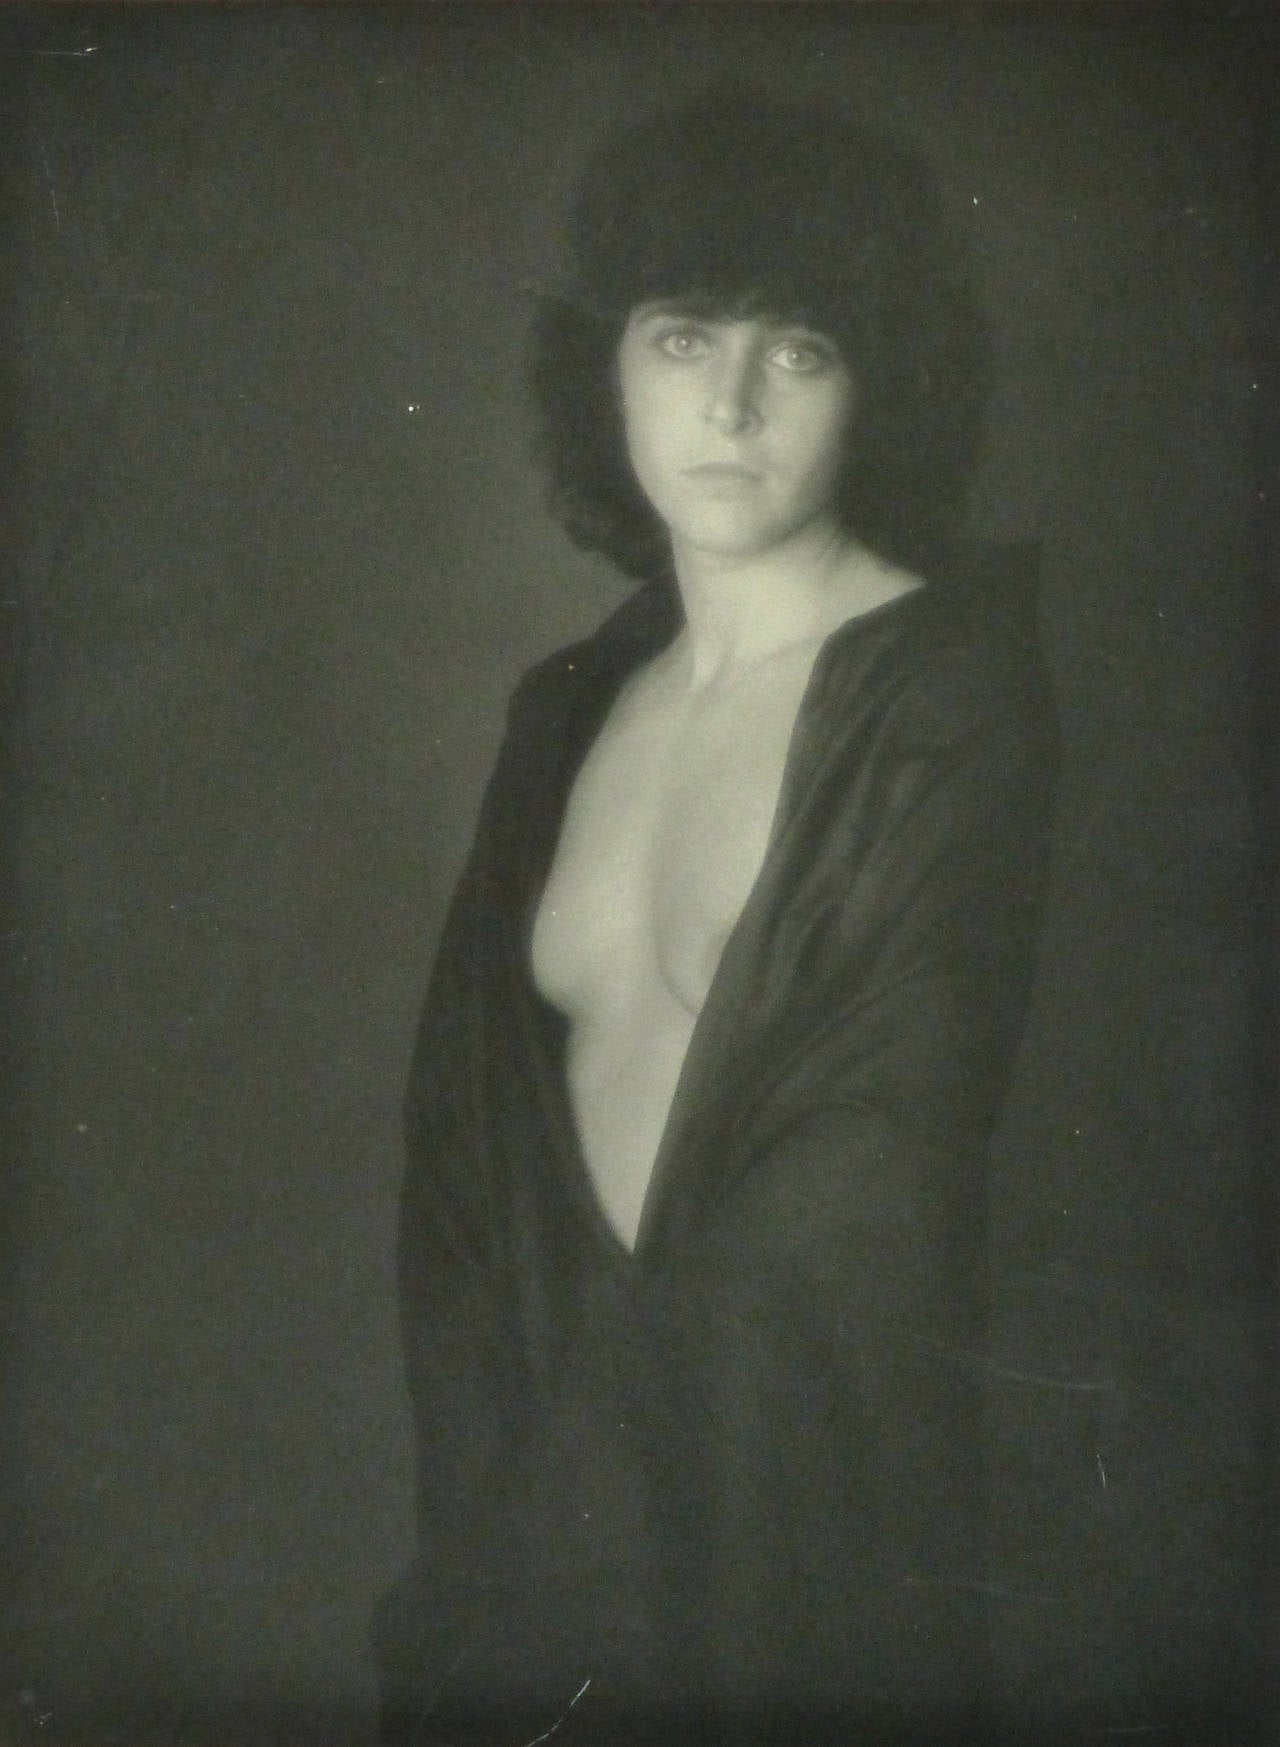 Vintage French Black and White Photograph - Dévêtue (Undressed)